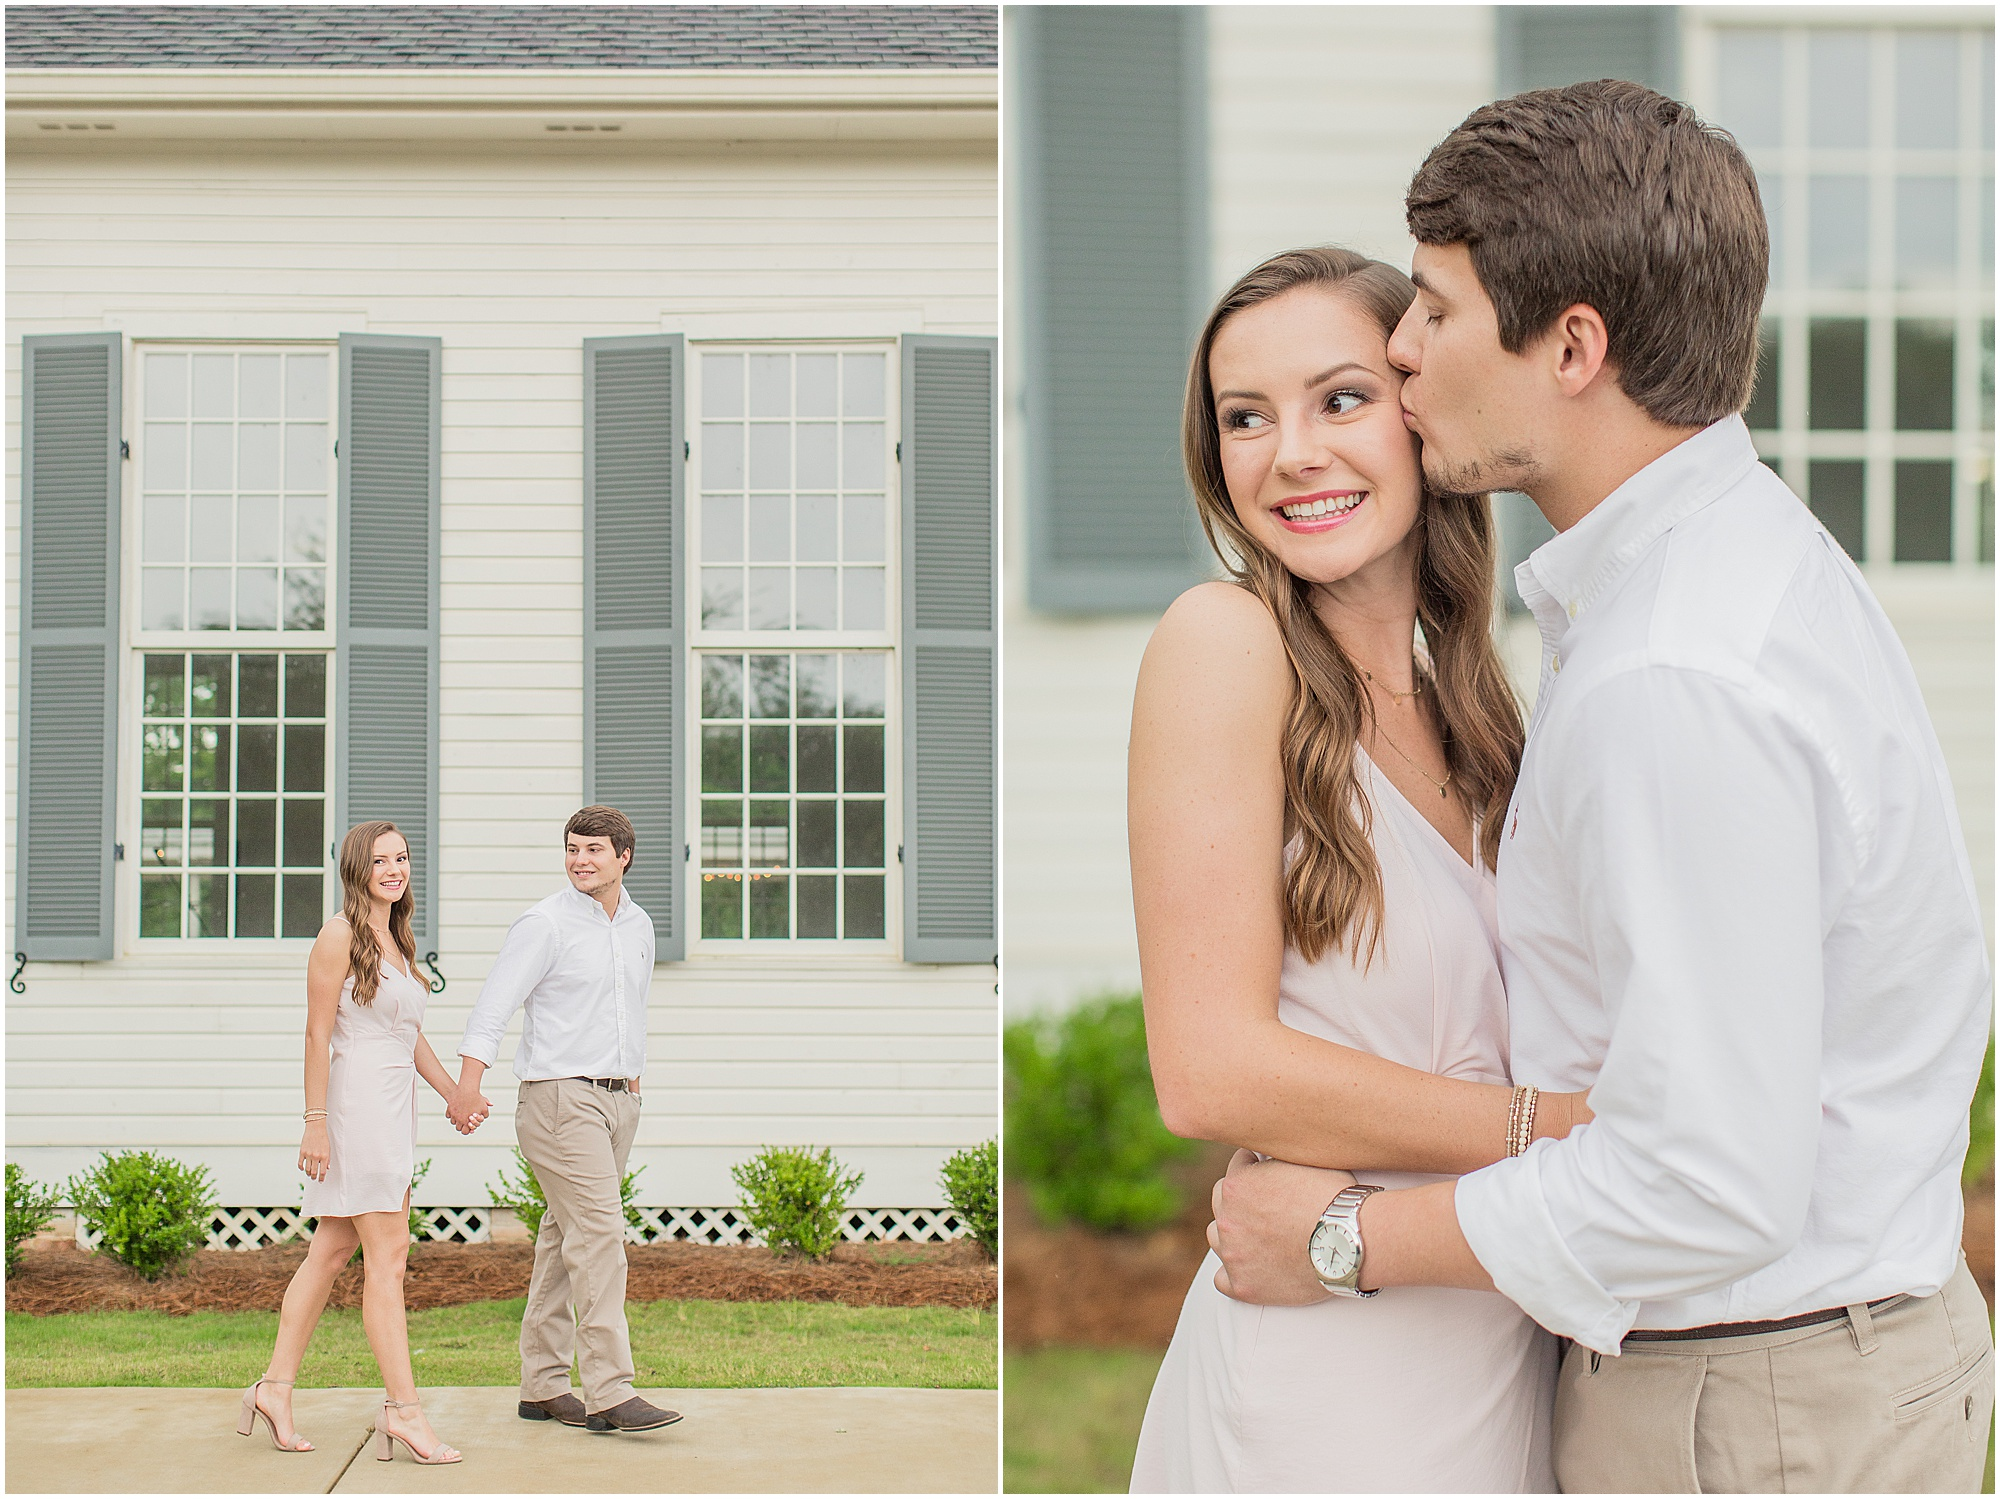 mississippi-spring-engagement-livingston-bridlewood_0001.jpg